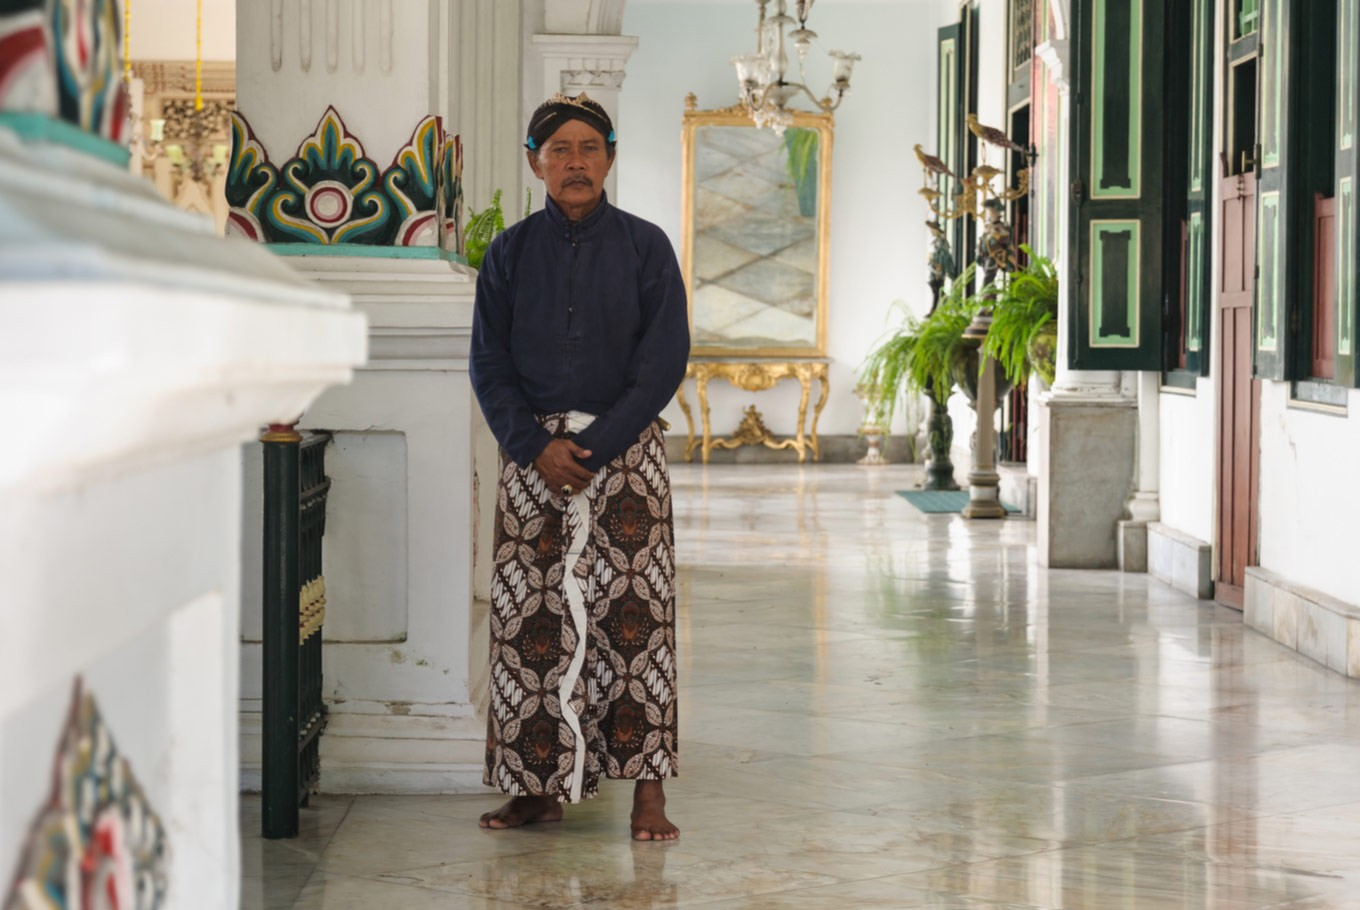 Yogyakarta Palace reduces number of servants due to COVID-19 pandemic